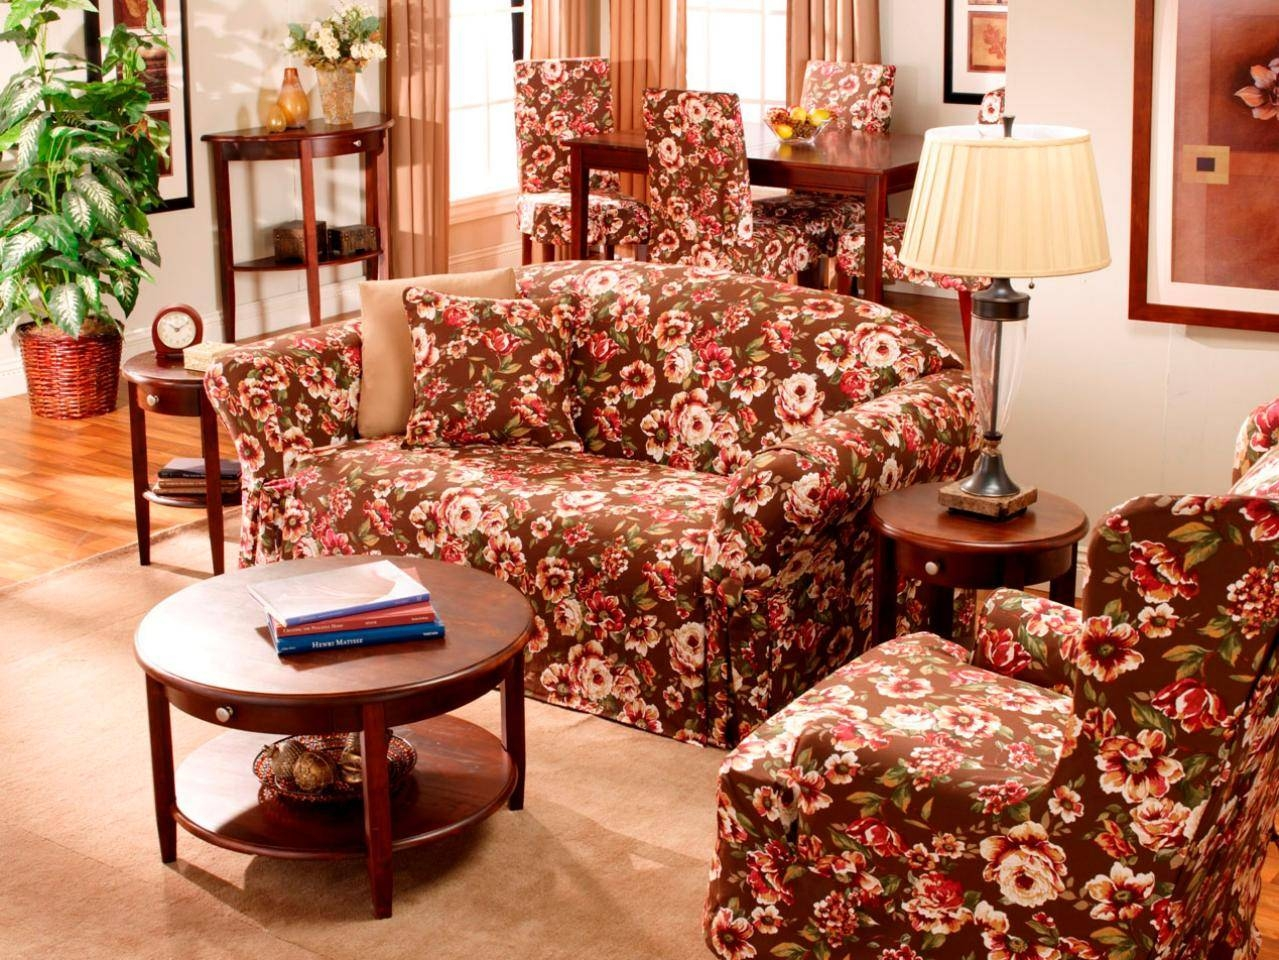 Primitive Living Room With Floral Couch - Carameloffers pertaining to Chintz Floral Sofas (Image 29 of 30)